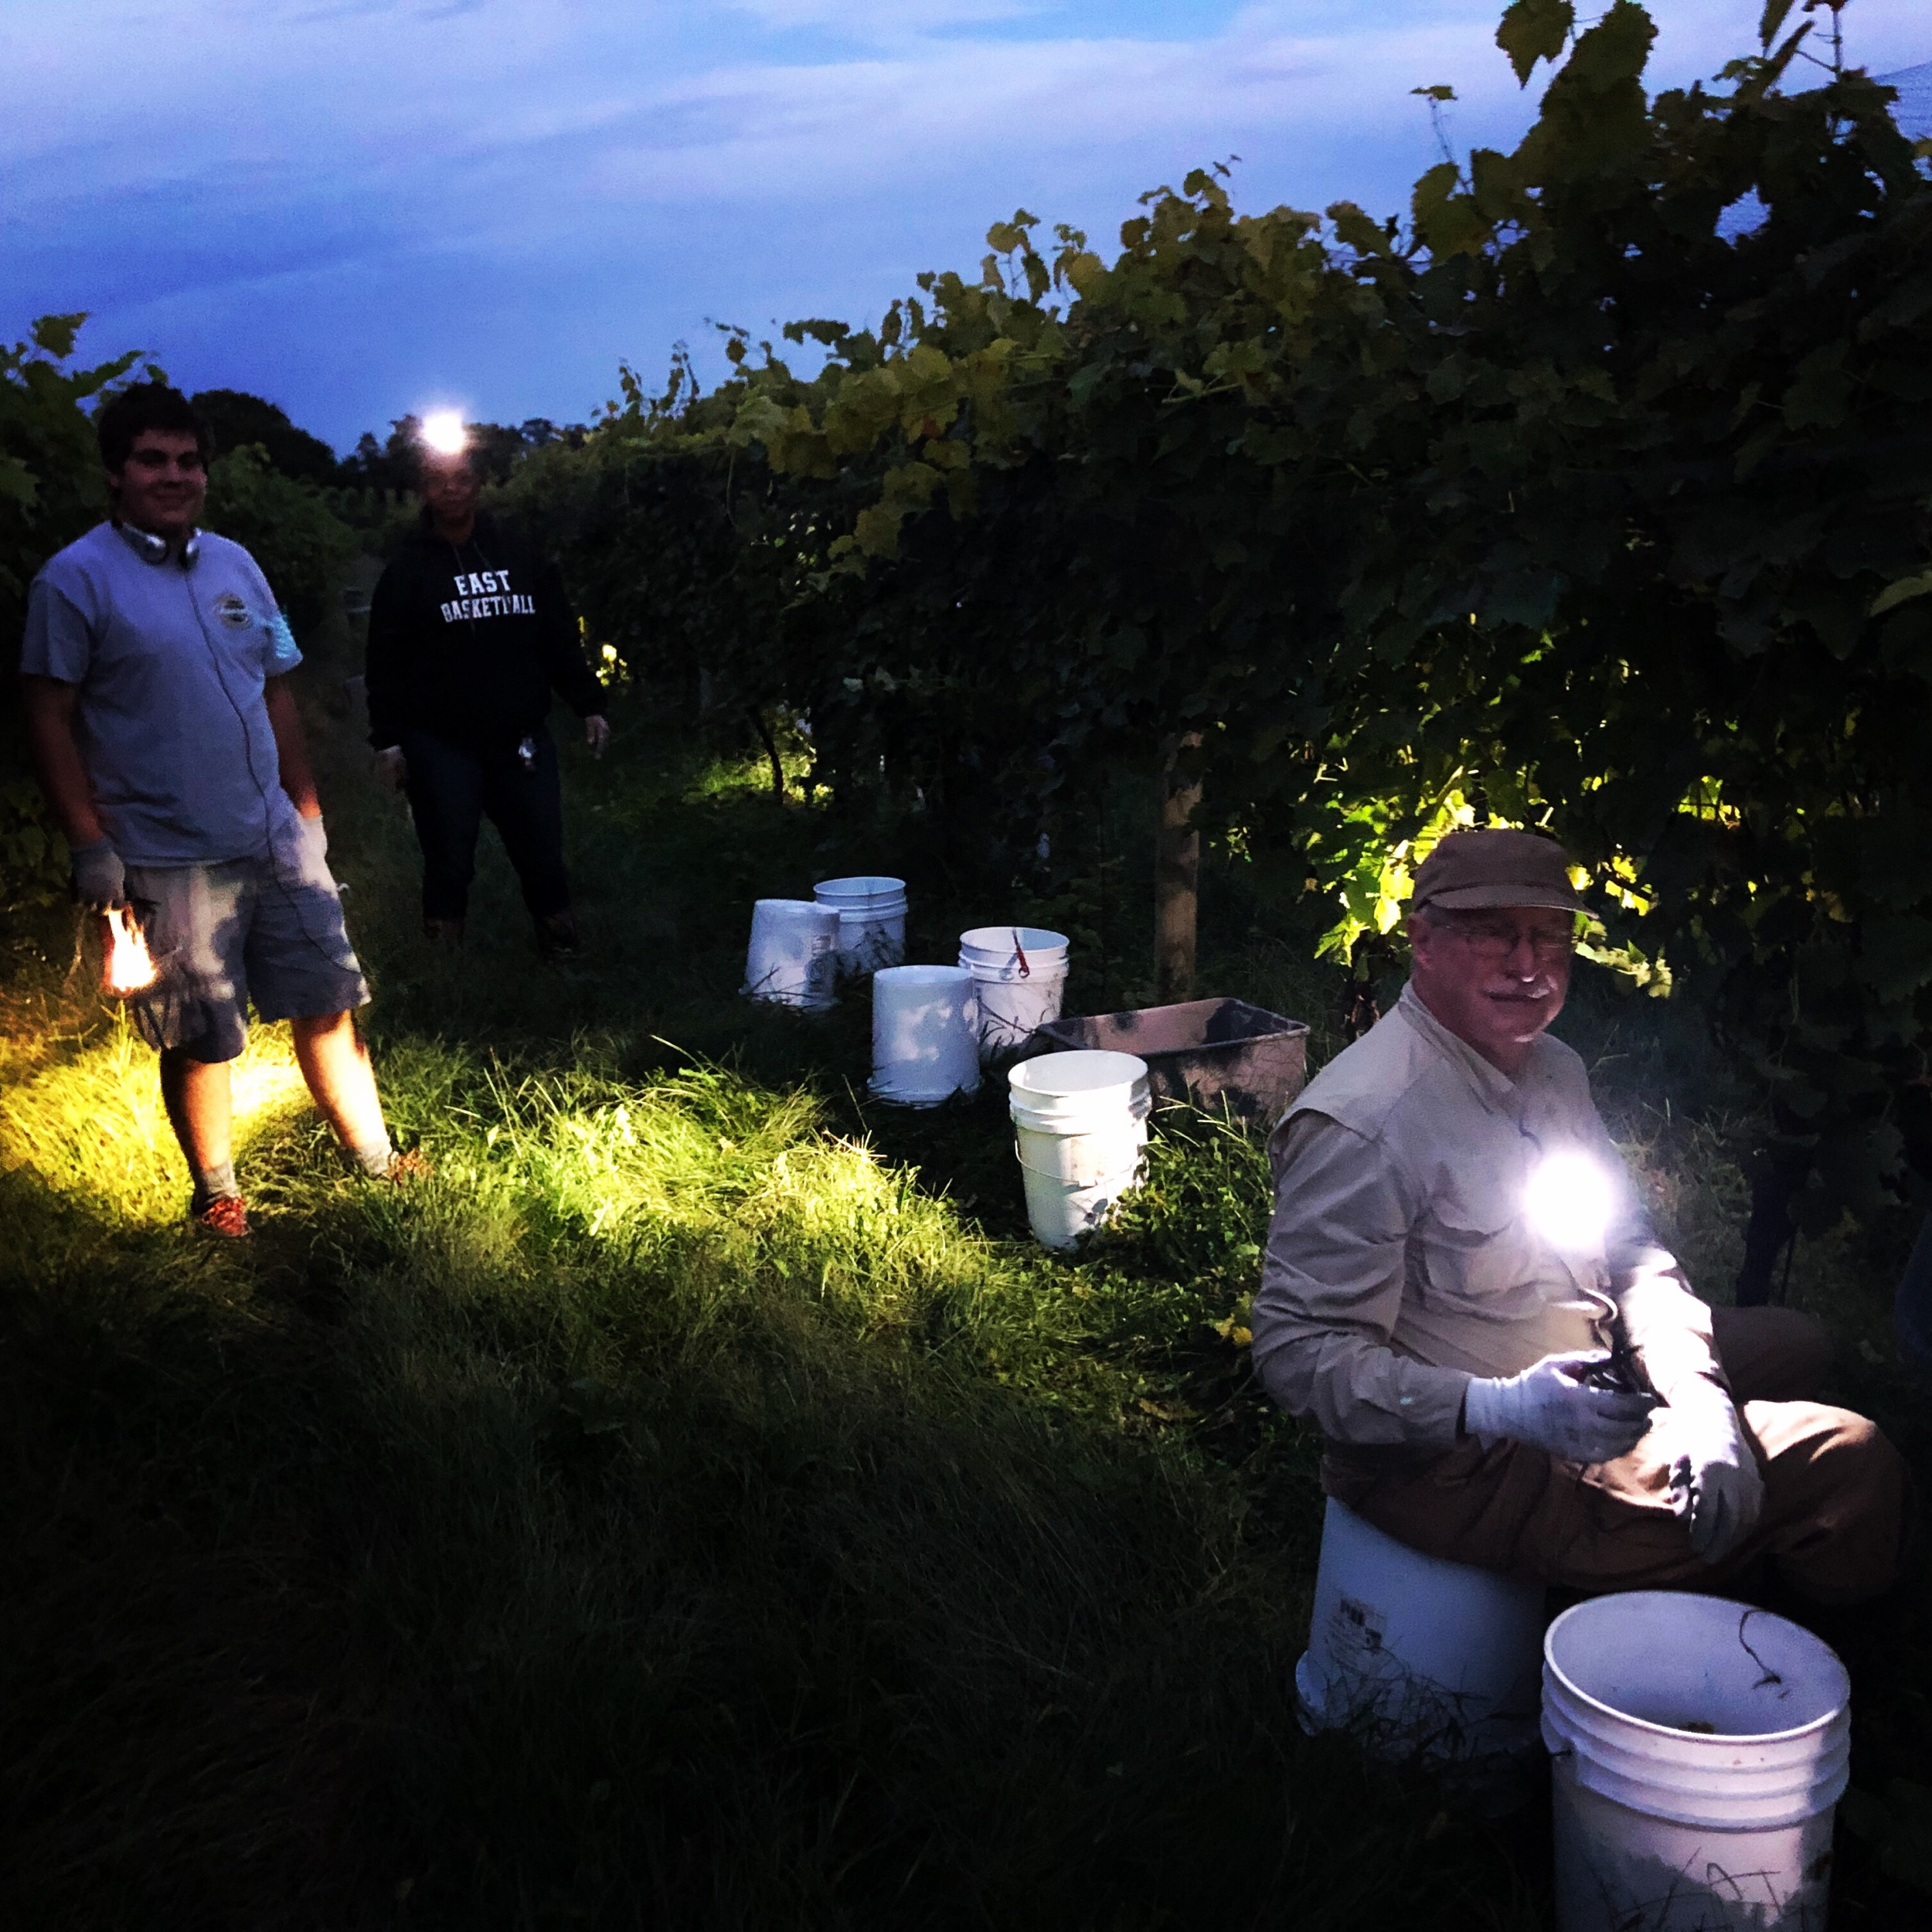 Night picking party 2018!